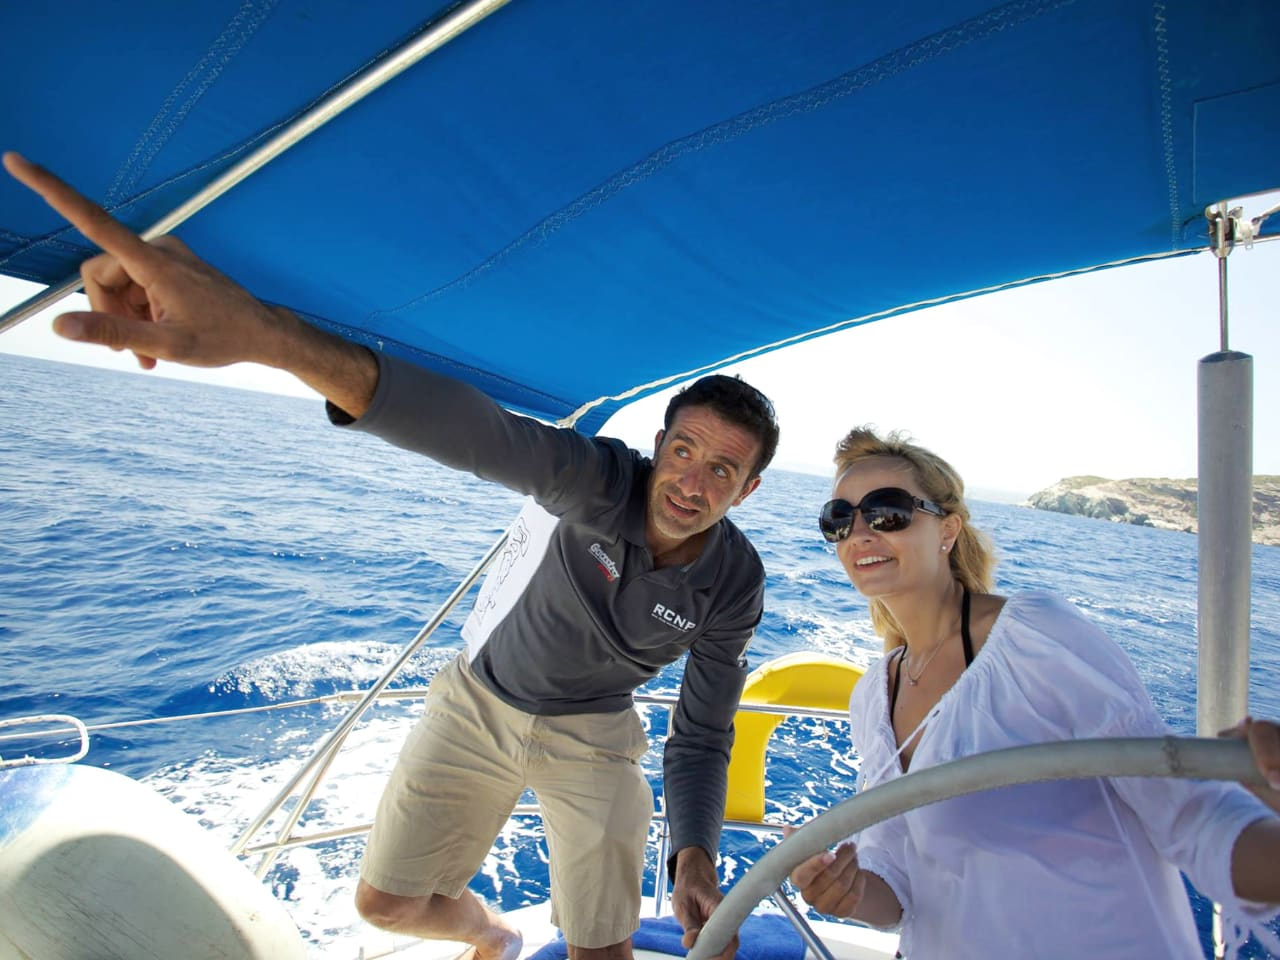 Sailing Fishing and BBQ Cruise , sailing private cruise heraklion crete, sailing activities heraklion crete, best sailing fishing cruise heraklion crete, sailing and fishing trip heraklion crete